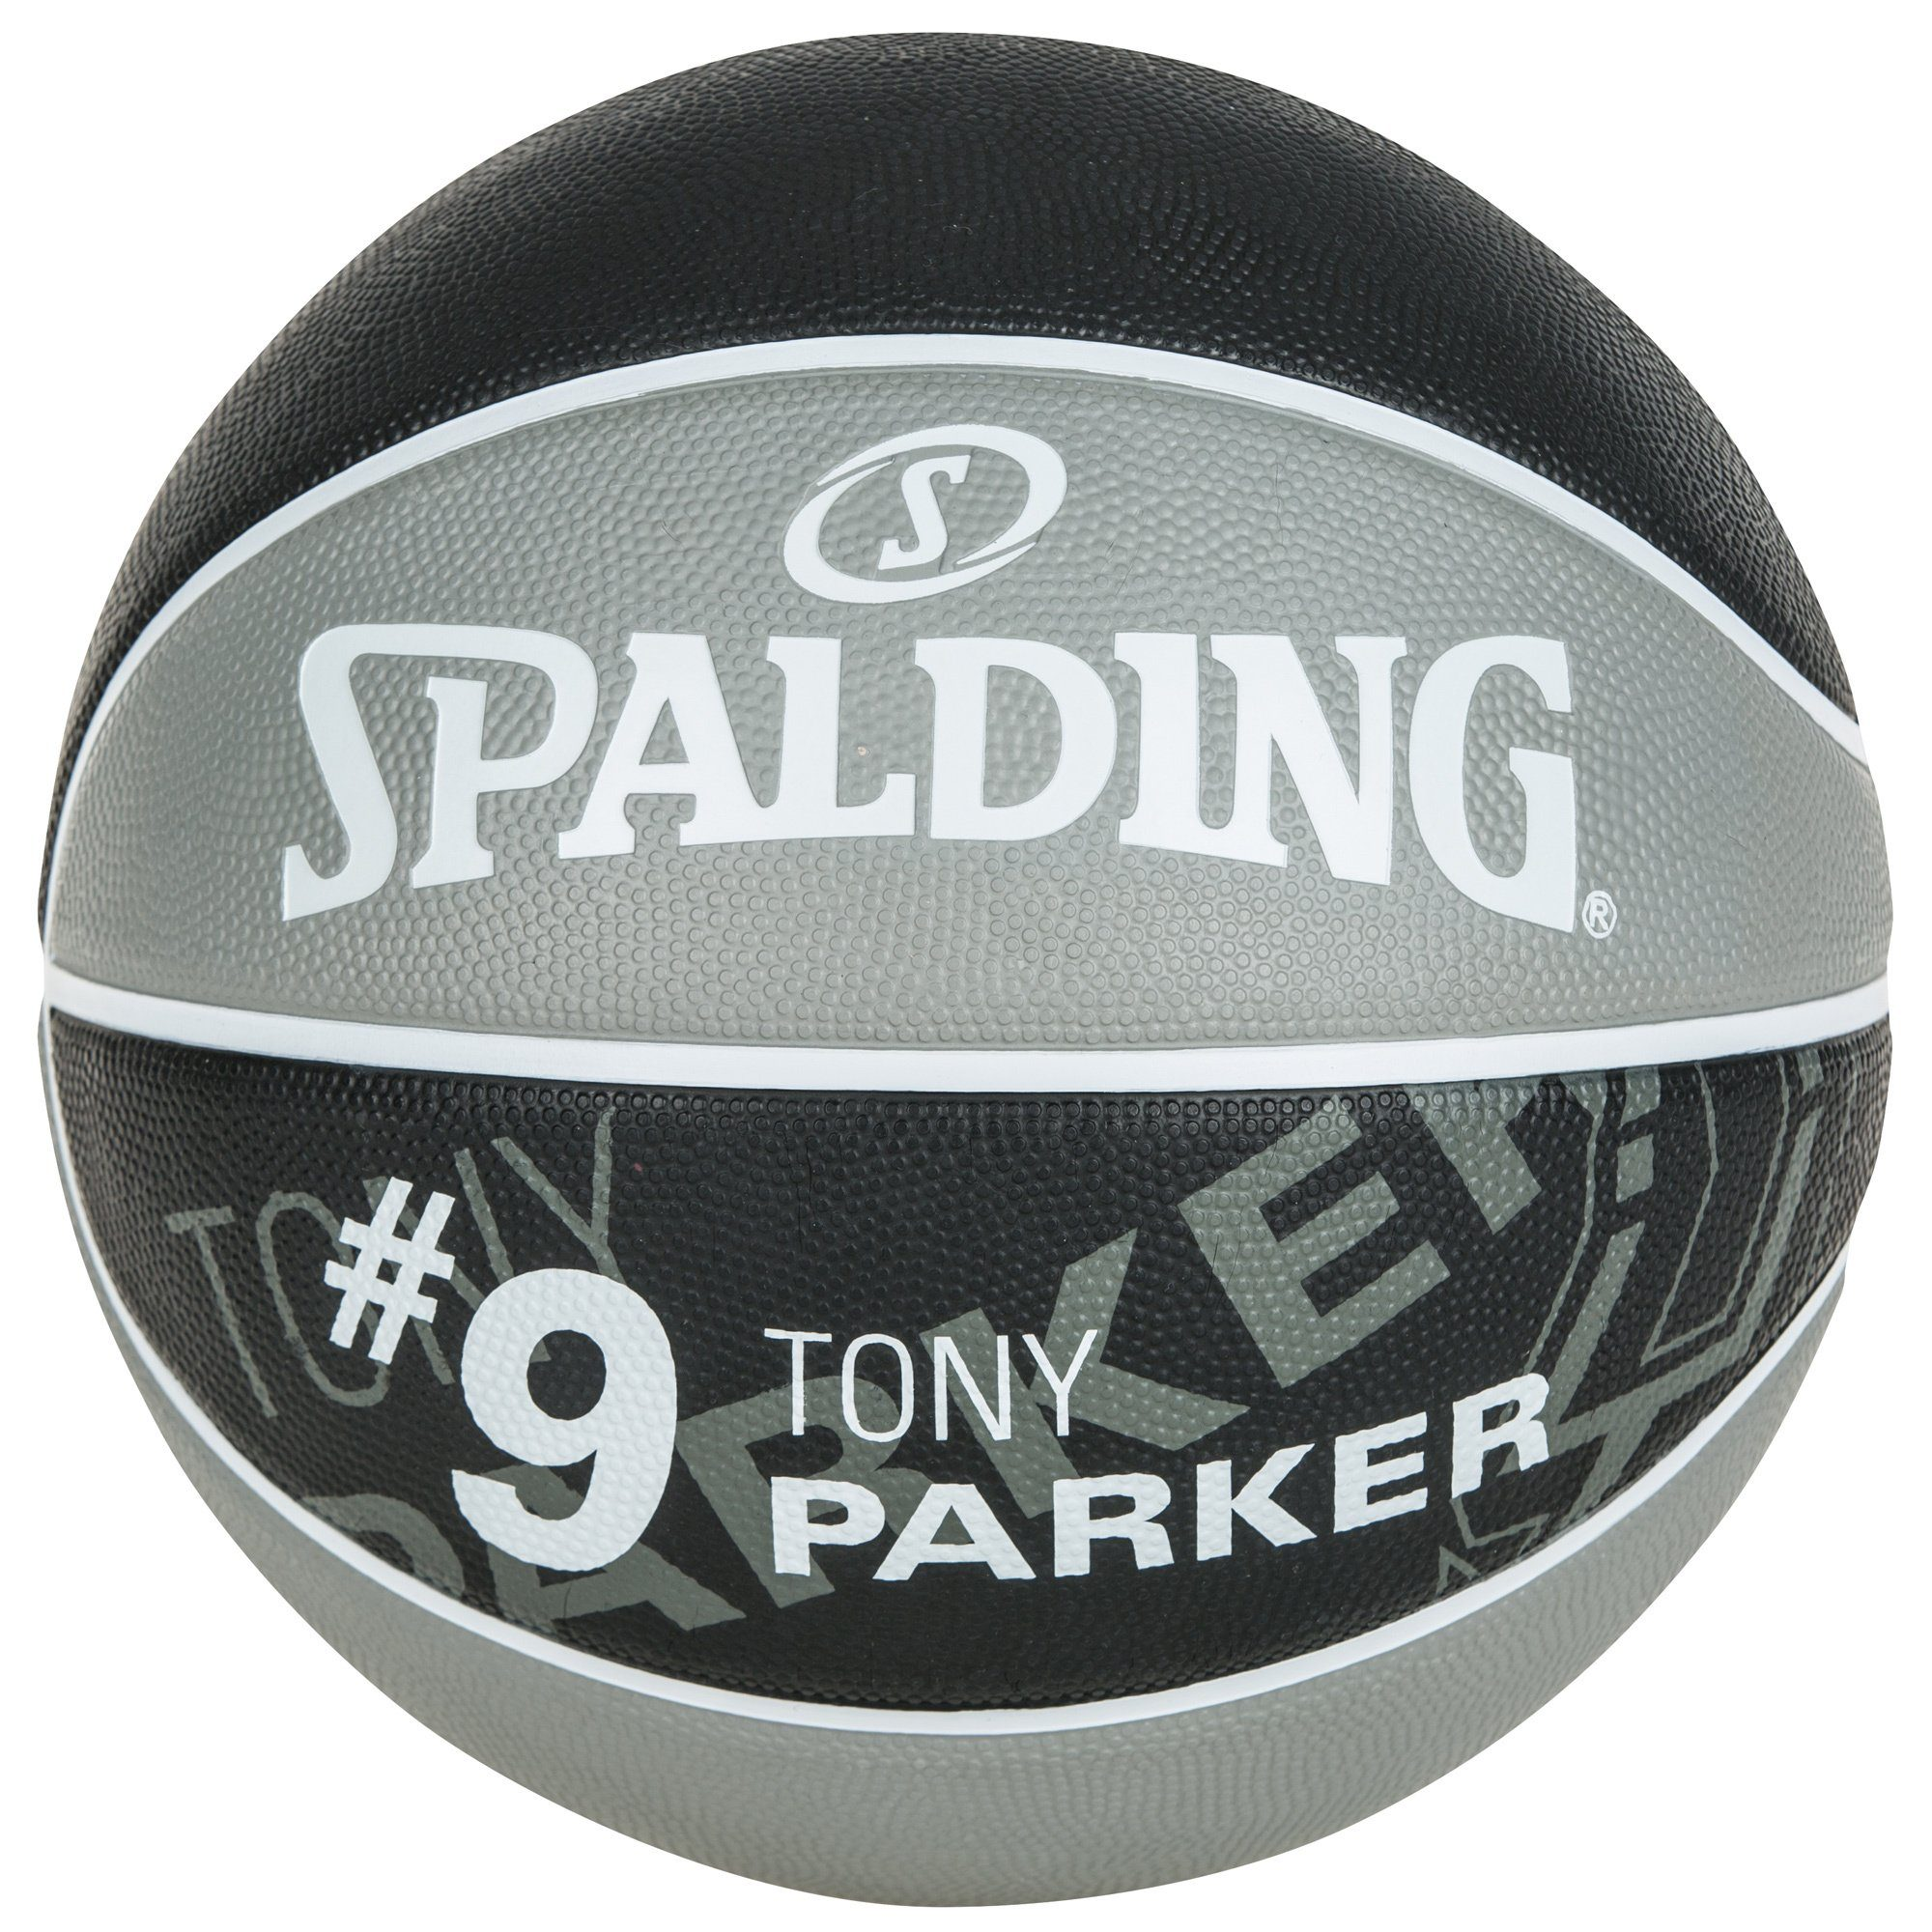 SPALDING NBA Player Tony Parker Basketball